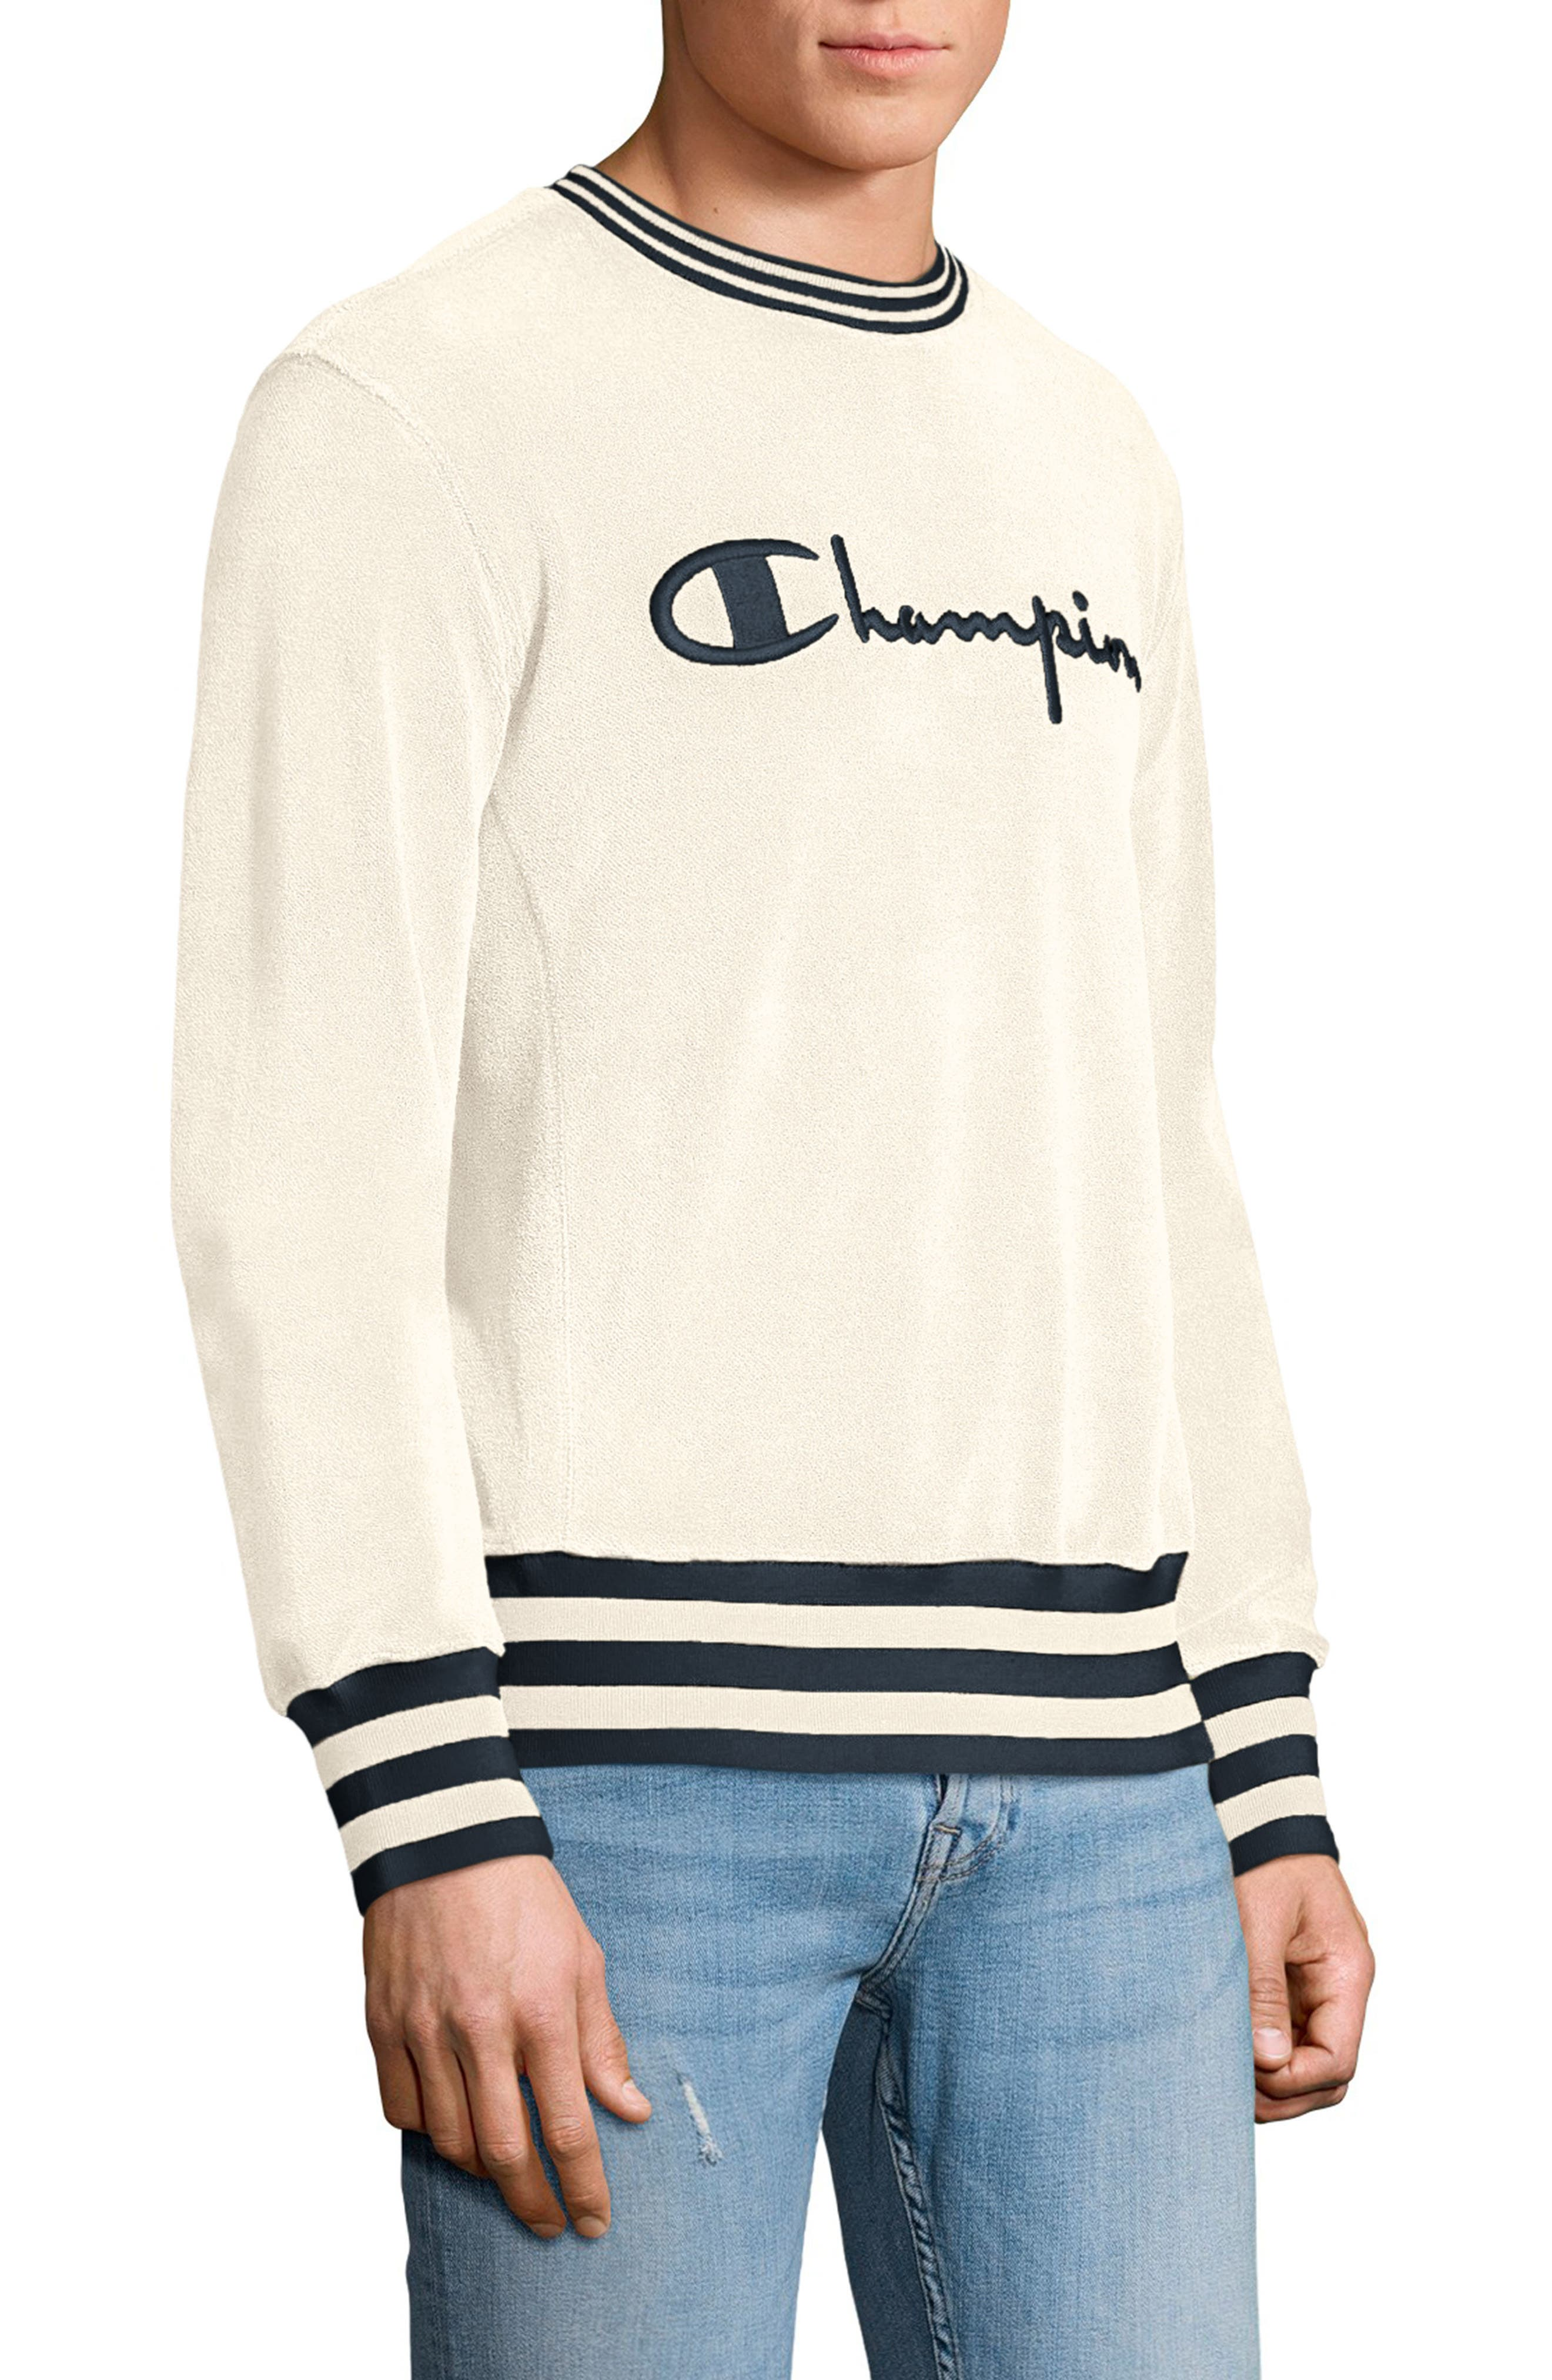 Sponge Terry Crewneck Sweatshirt,                             Alternate thumbnail 3, color,                             100